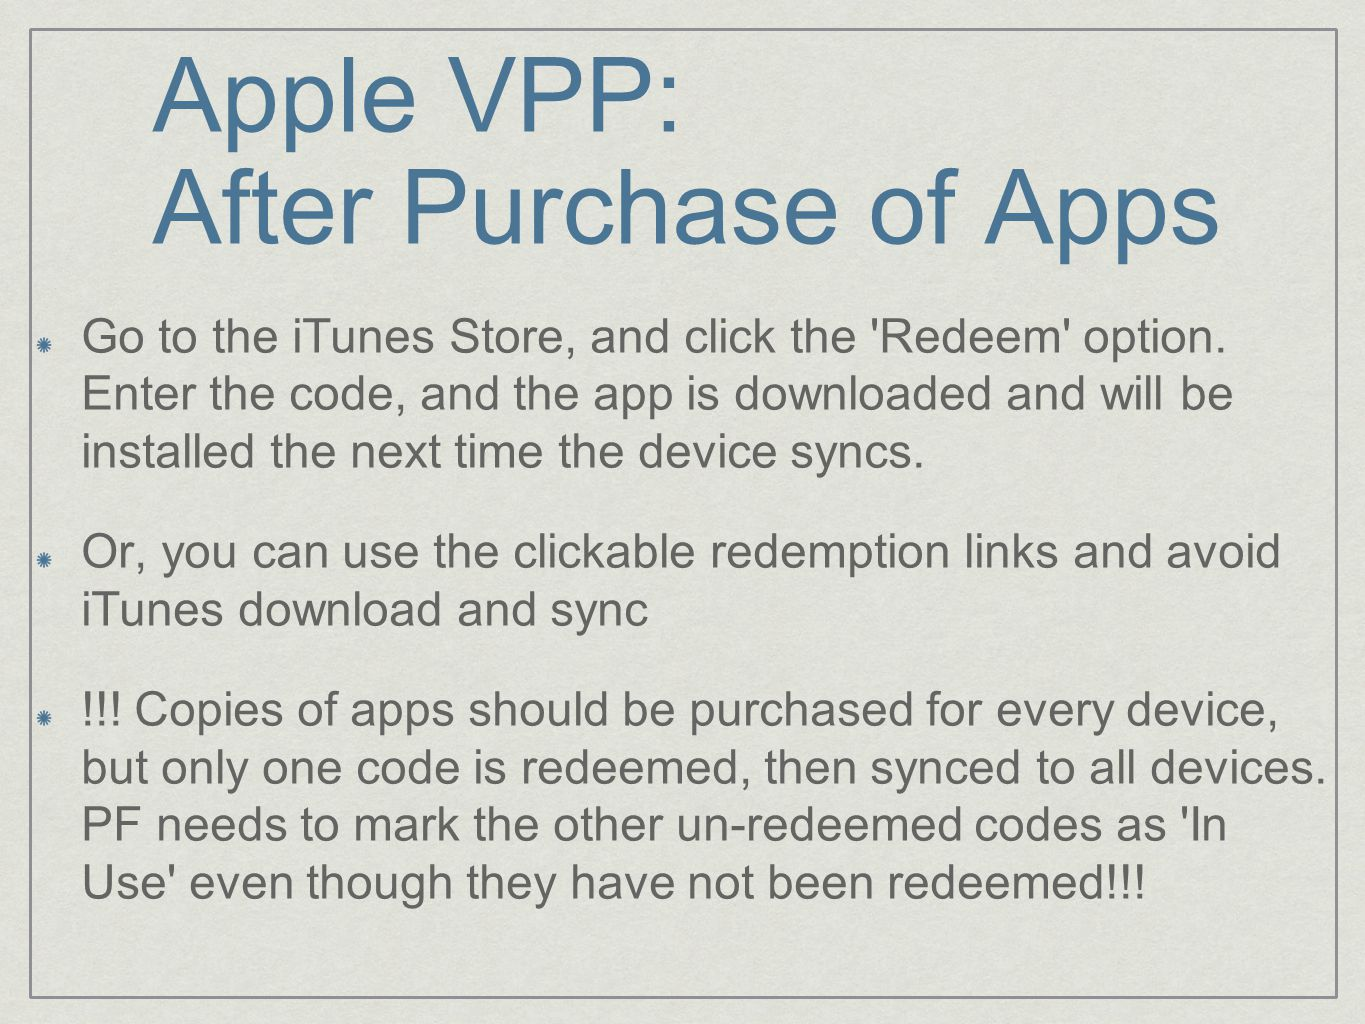 Apple VPP: After Purchase of Apps Go to the iTunes Store, and click the 'Redeem' option. Enter the code, and the app is downloaded and will be install